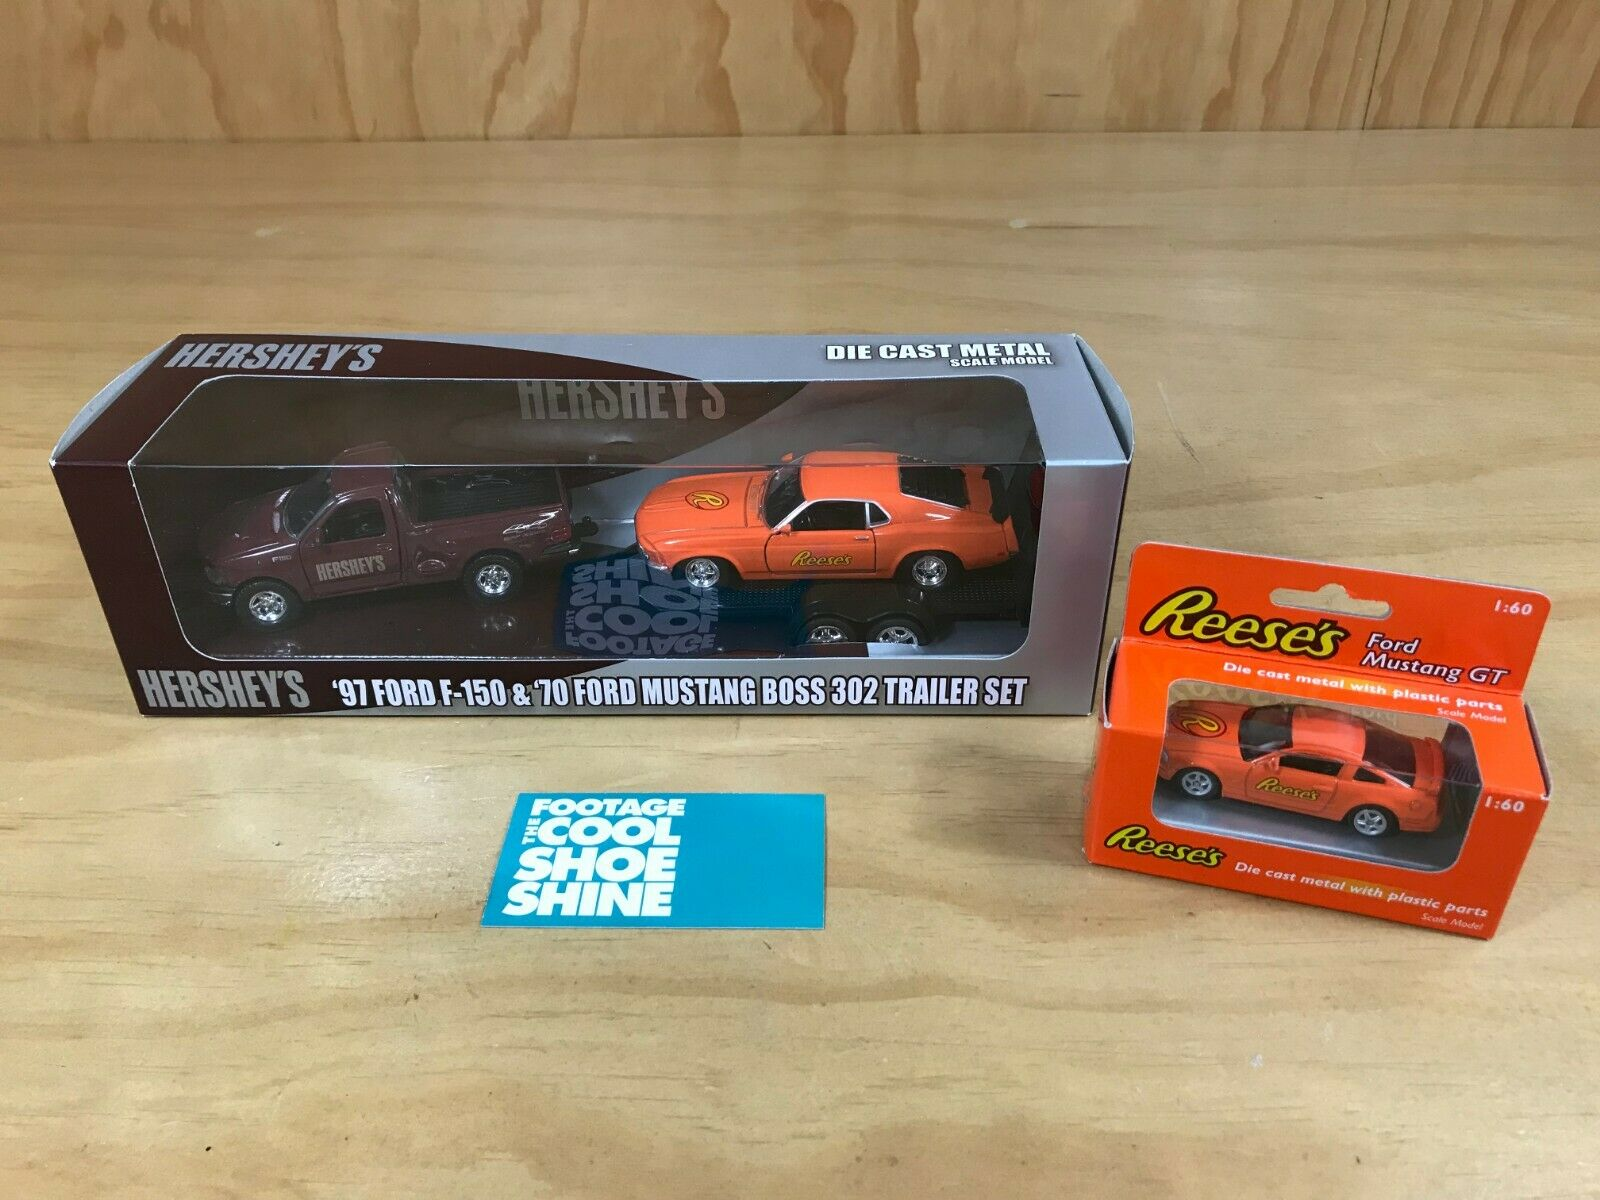 SET OF 2 WELLY DIE CAST TOY CARS HERSHEYS REESES FORD F-150 MUSTANG GT BOSS 302